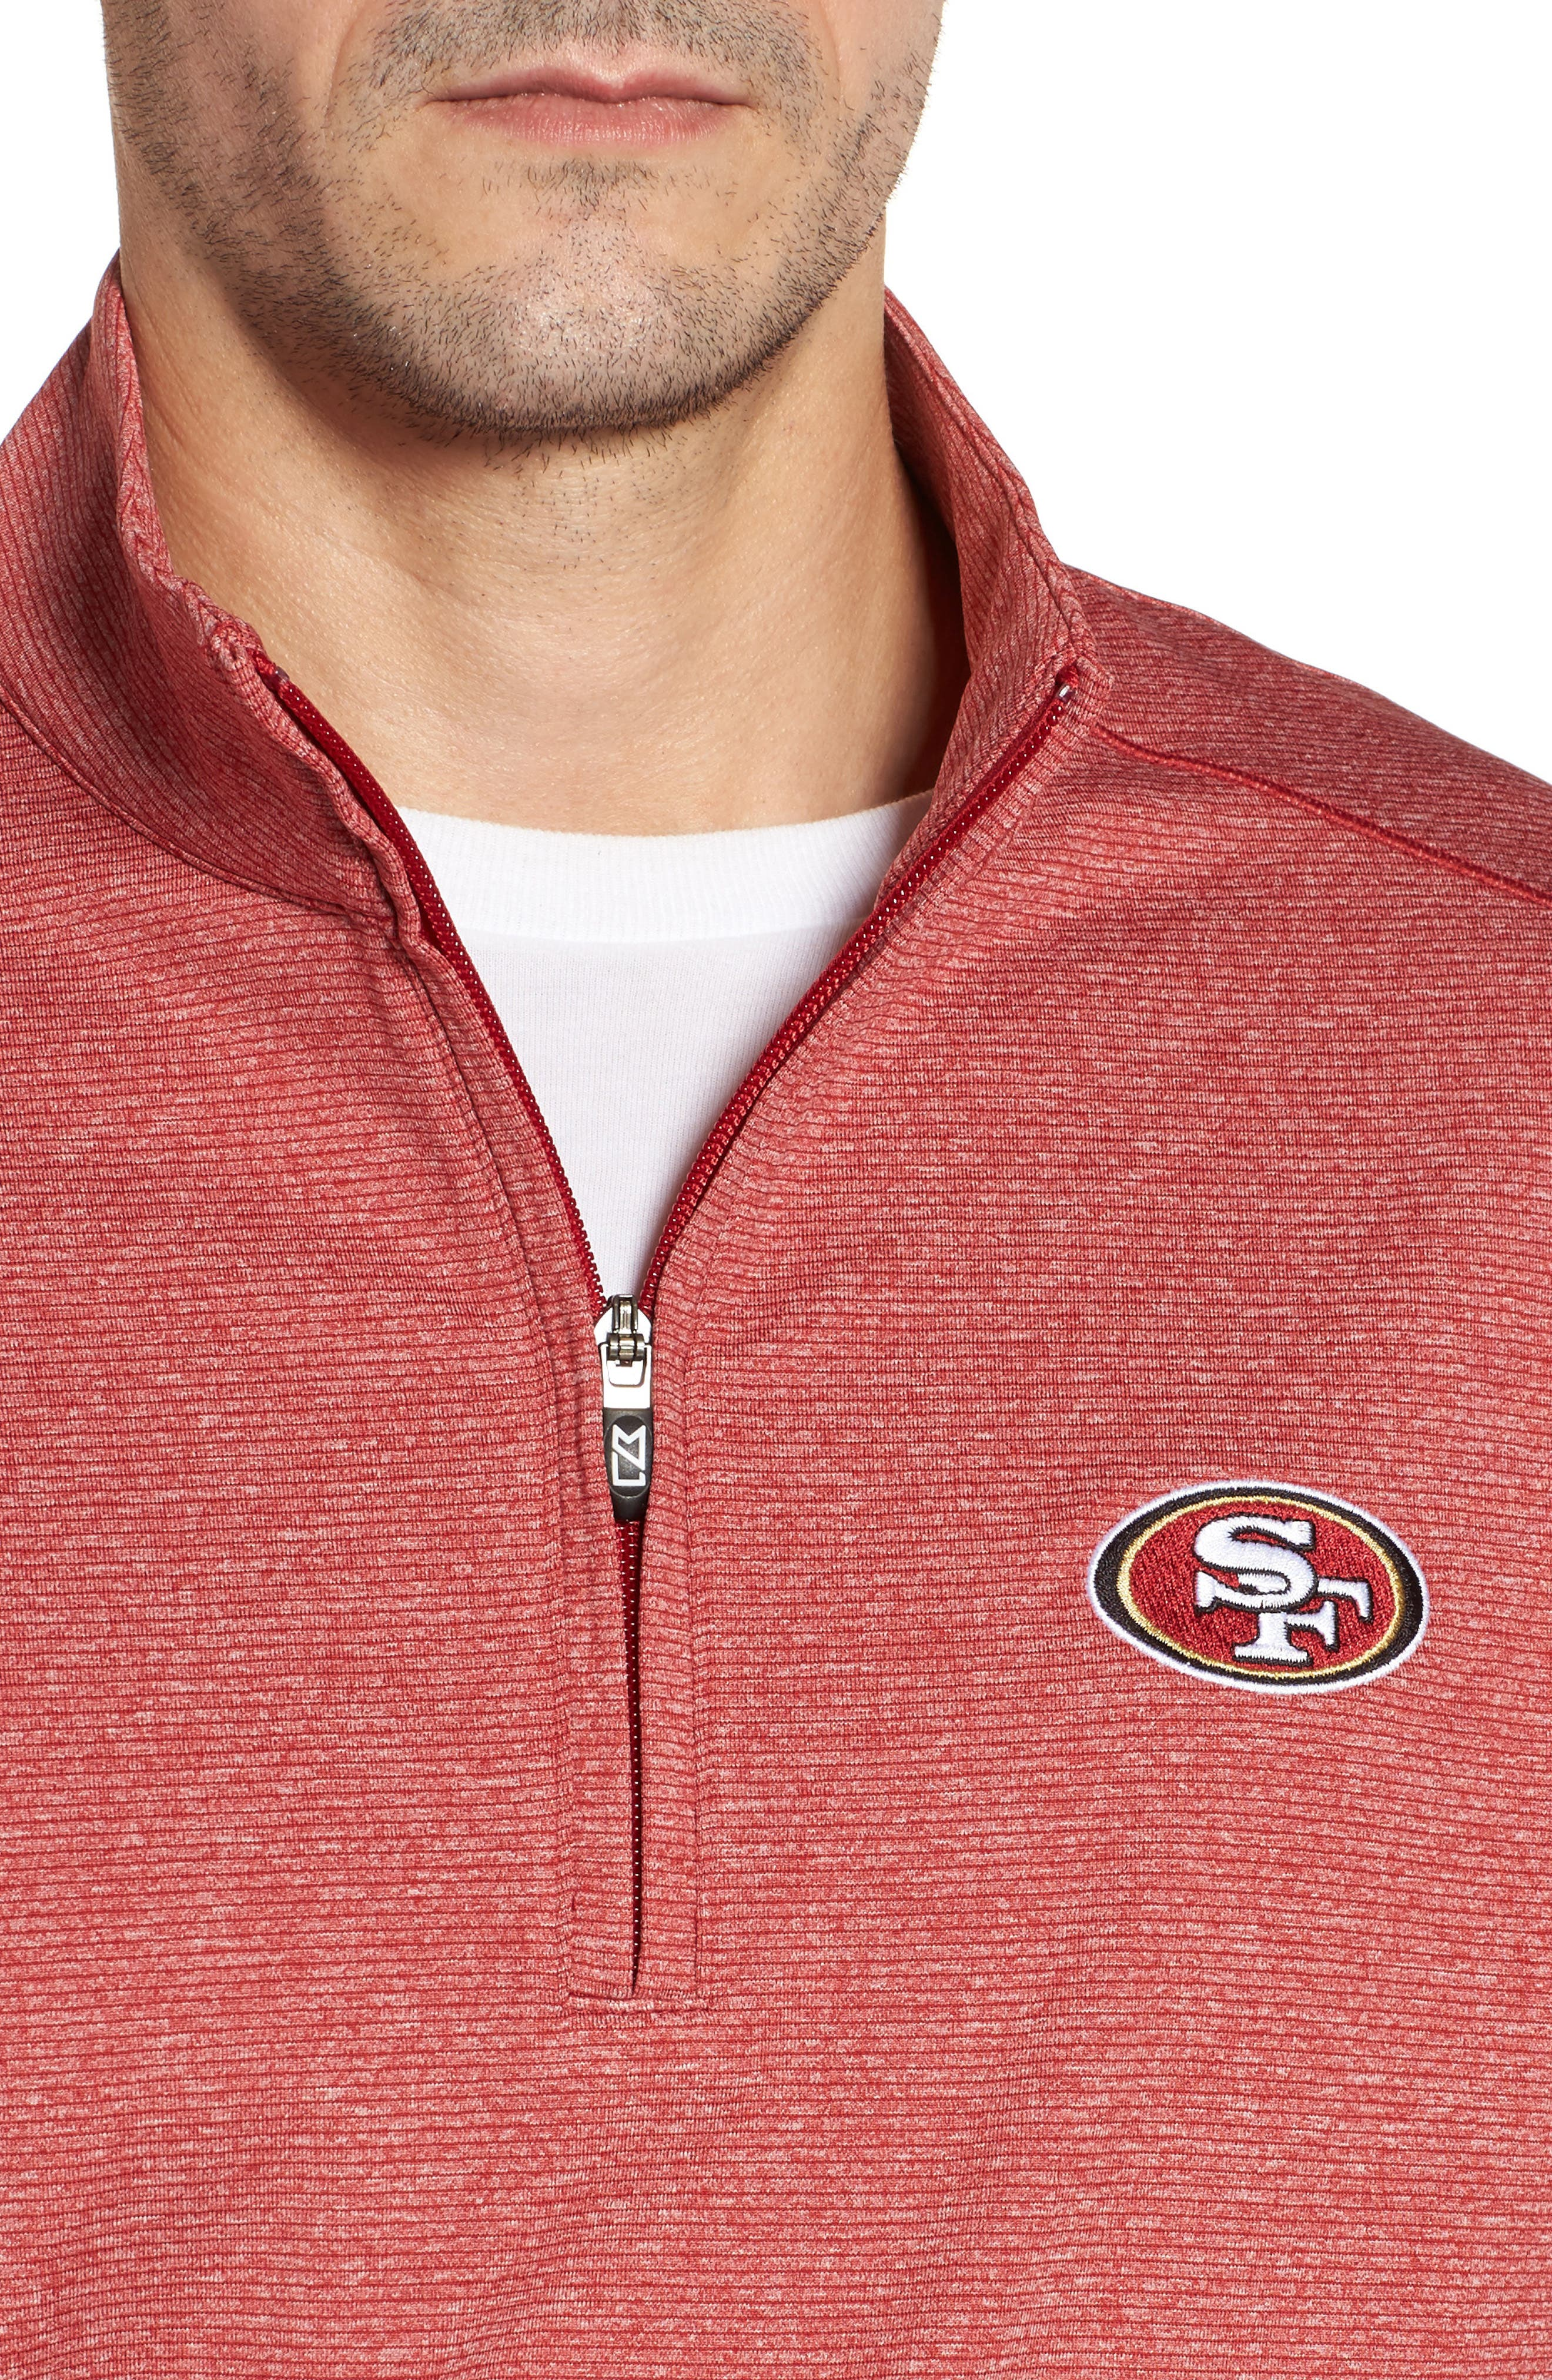 Shoreline - San Francisco 49ers Half Zip Pullover,                             Alternate thumbnail 4, color,                             Cardinal Red Heather